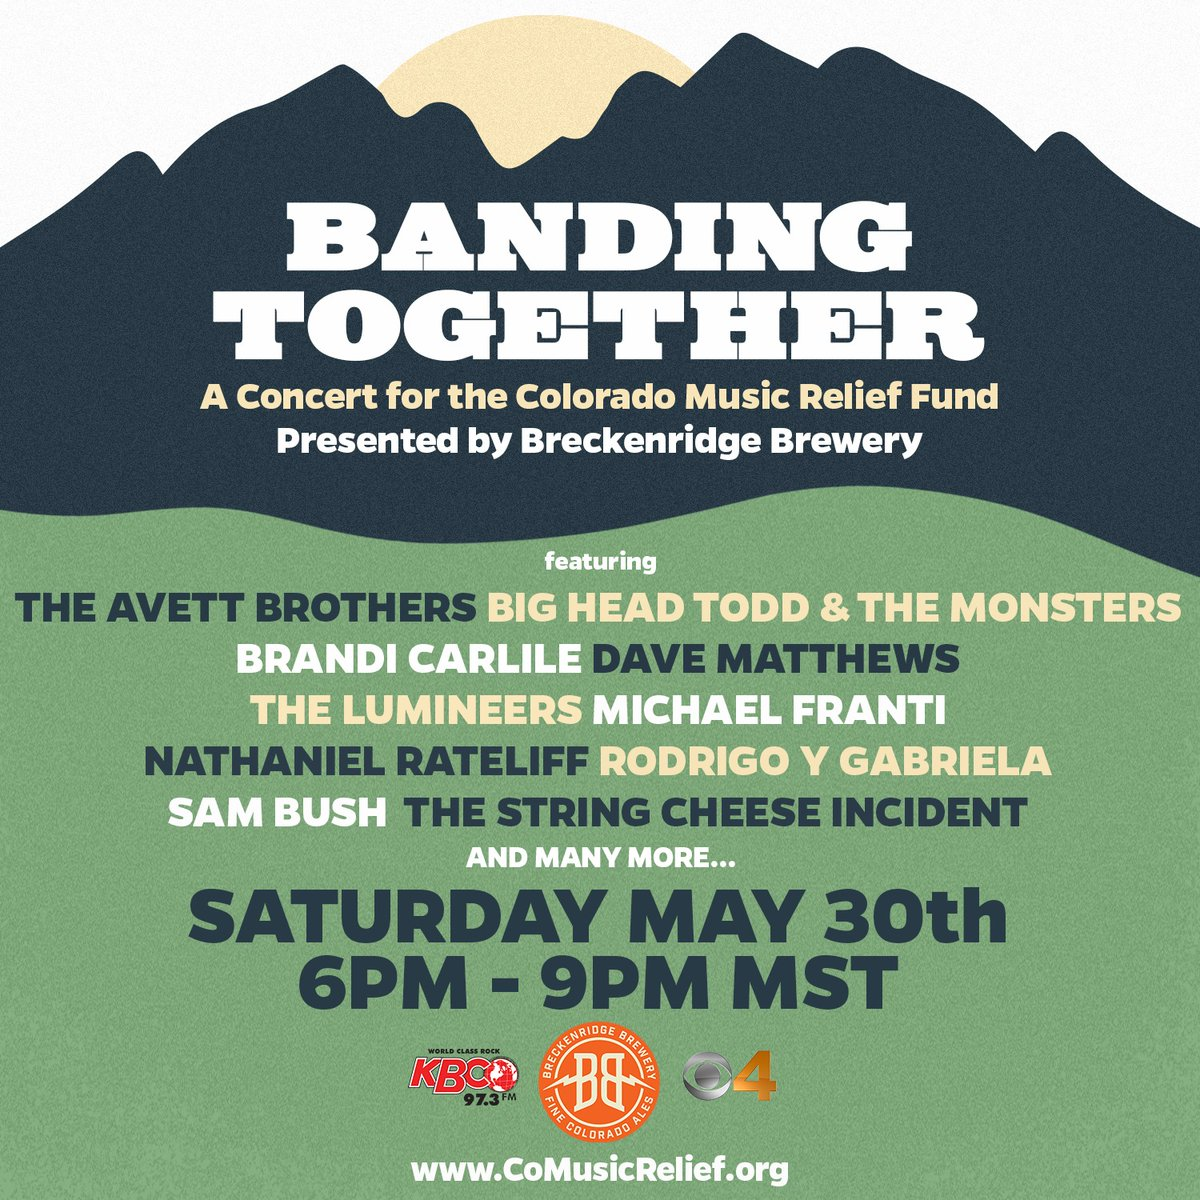 Band Together this weekend in support of the Colorado Music Relief Fund by tuning into live performances by The String Cheese Incident, Nathaniel Rateliff, Michael Franti, The Lumineers + more. comusicrelief.org